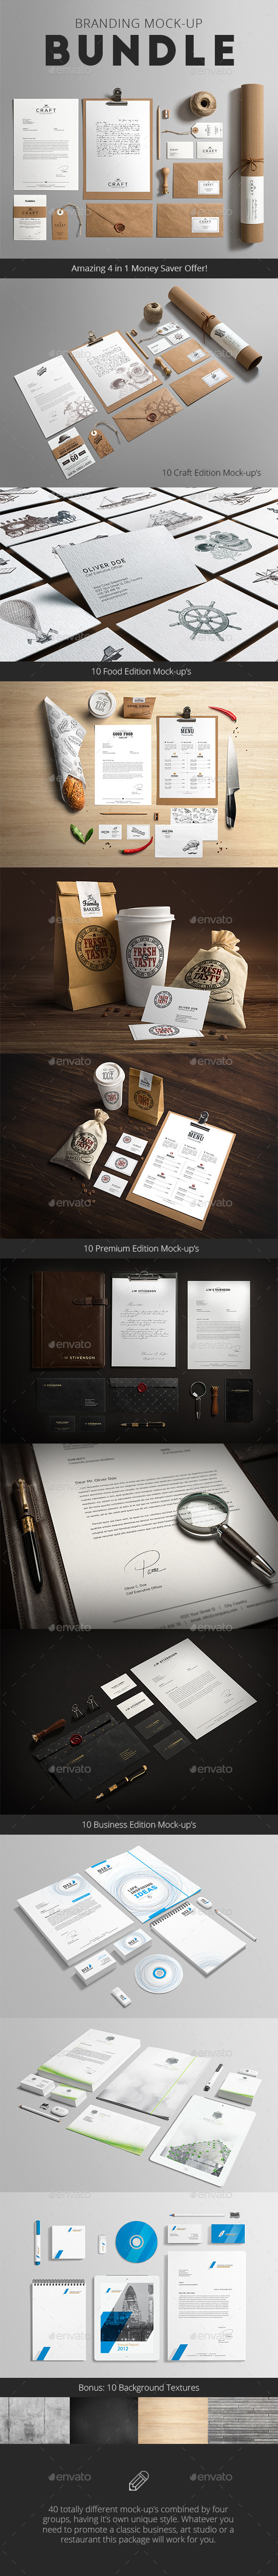 Stationery / Branding Mock-Up Bundle (Stationery)